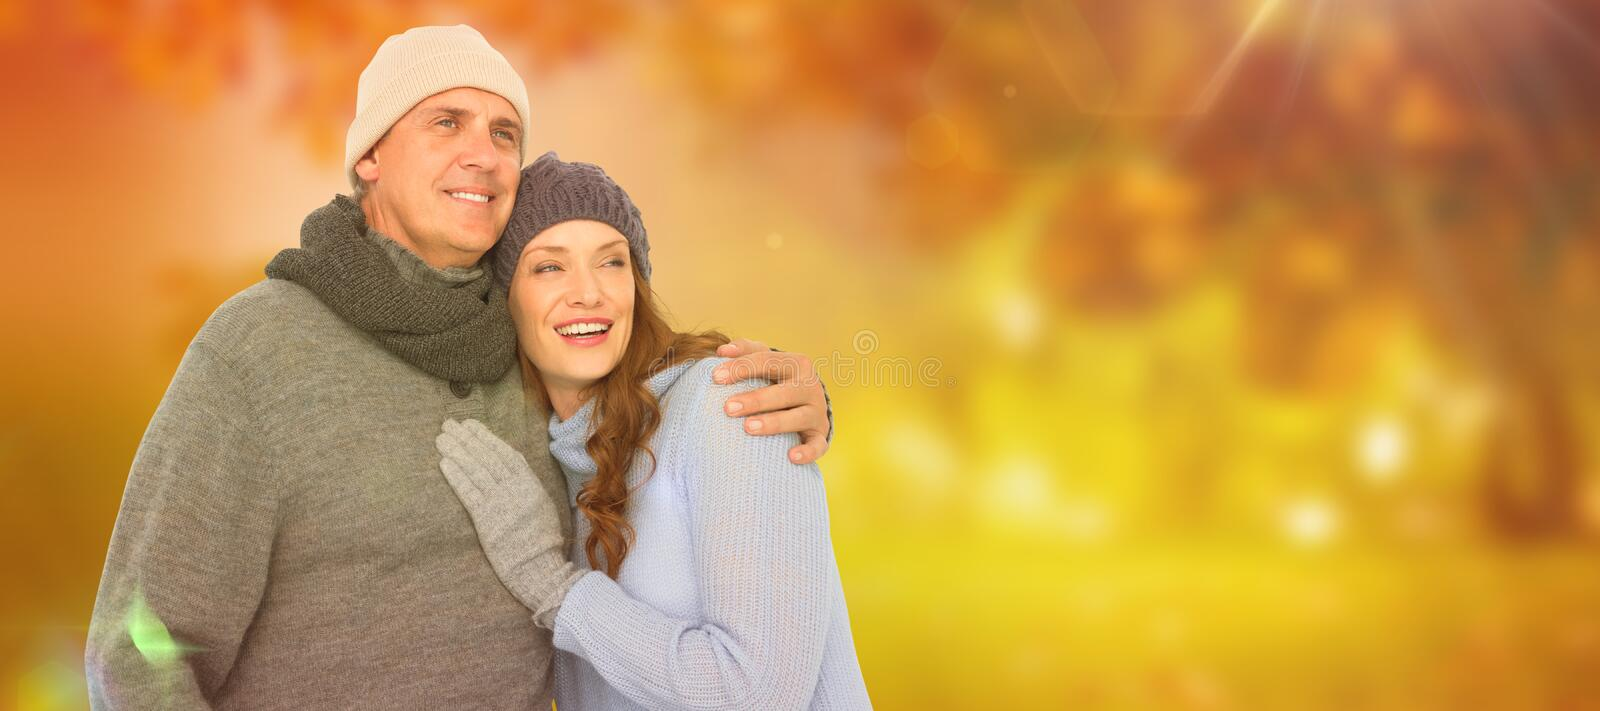 Composite image of couple in warm clothing embracing. Couple in warm clothing embracing against autumn scene stock photos